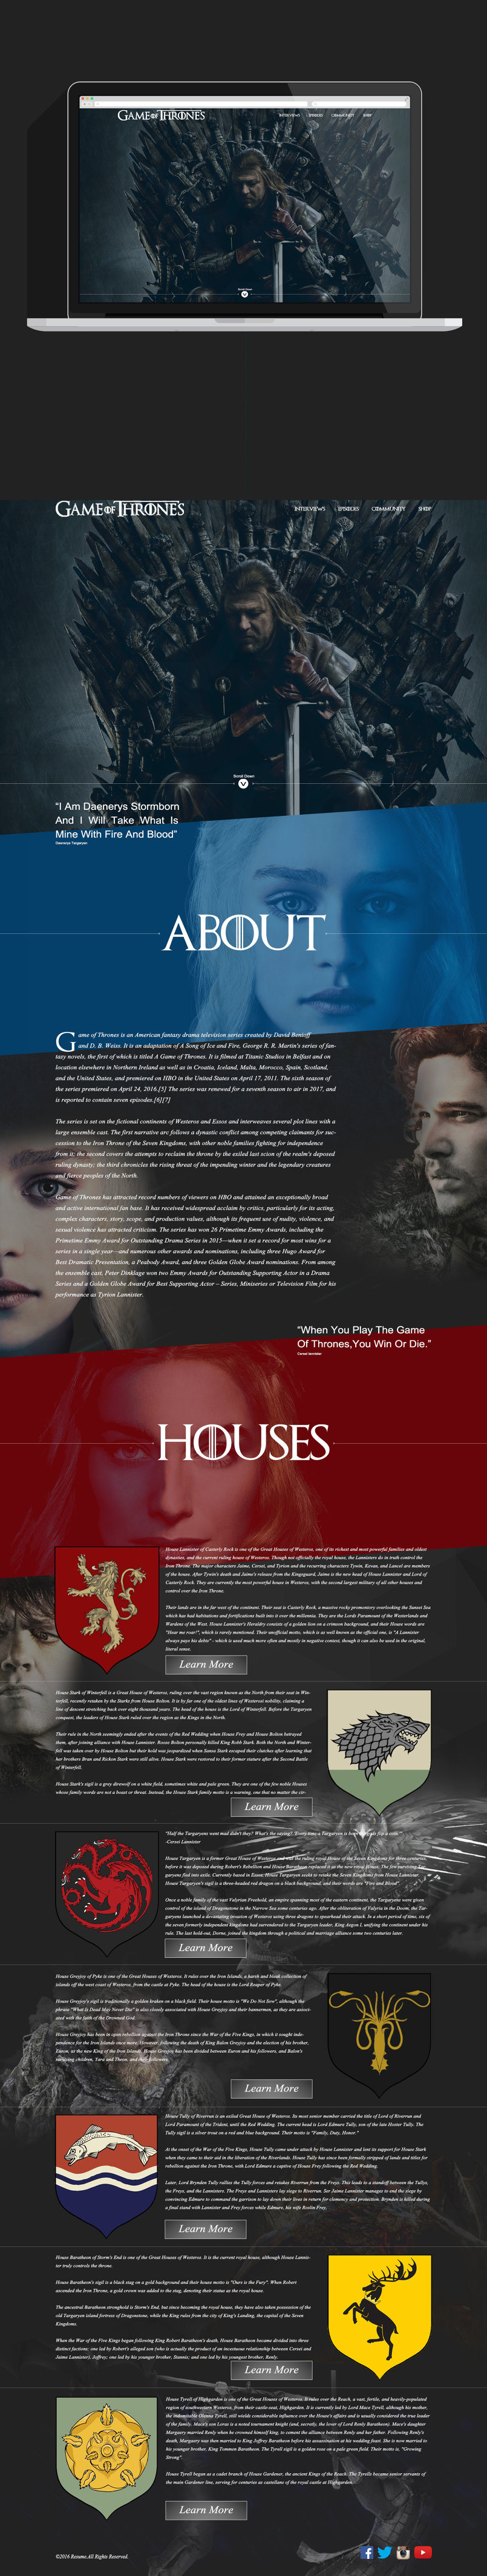 game of thrones website redesign concept